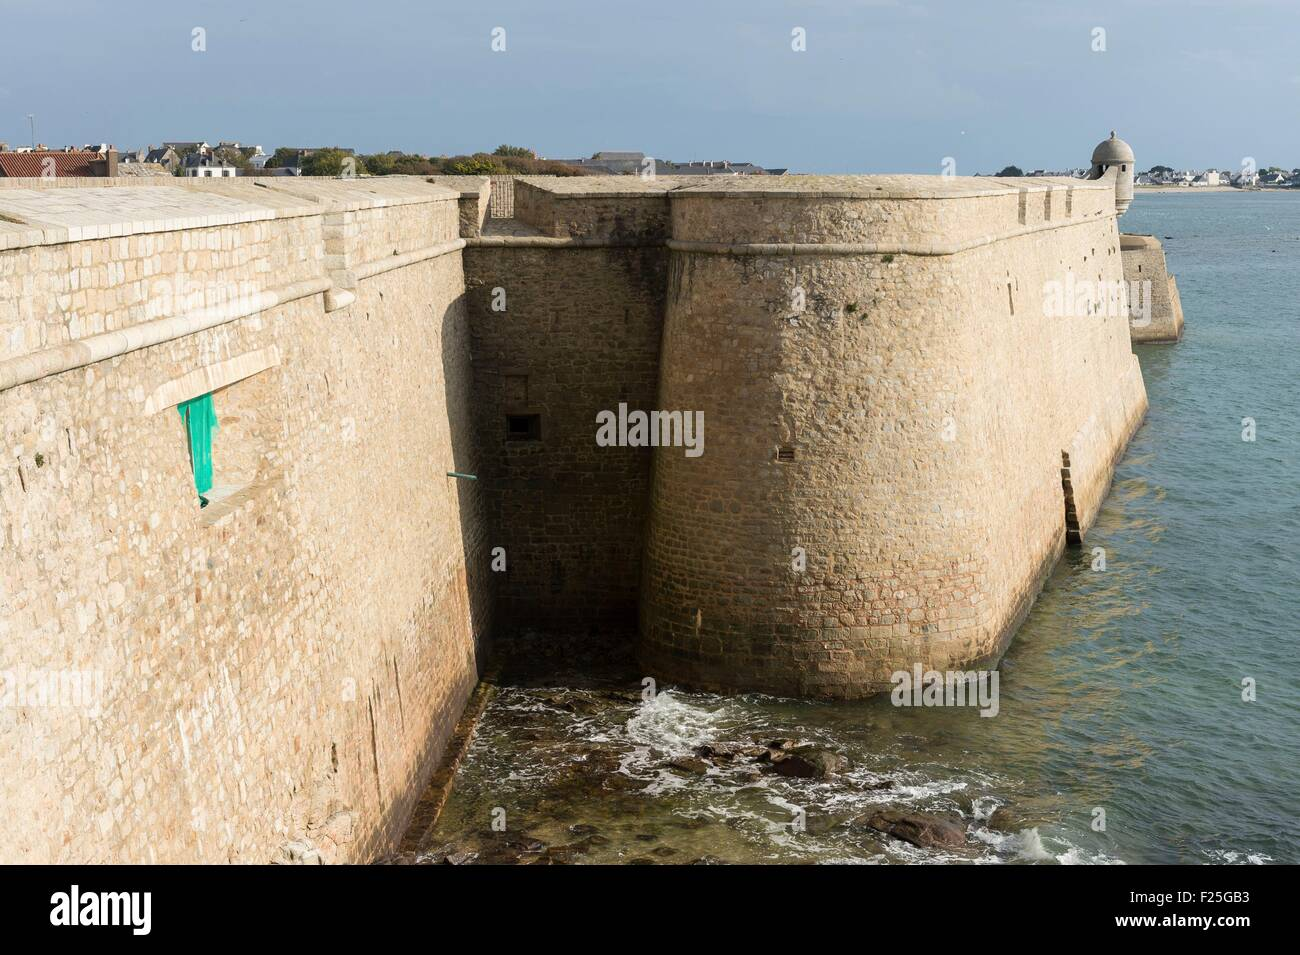 France, Morbihan, Port Louis, fortifications of the Citadell - Stock Image